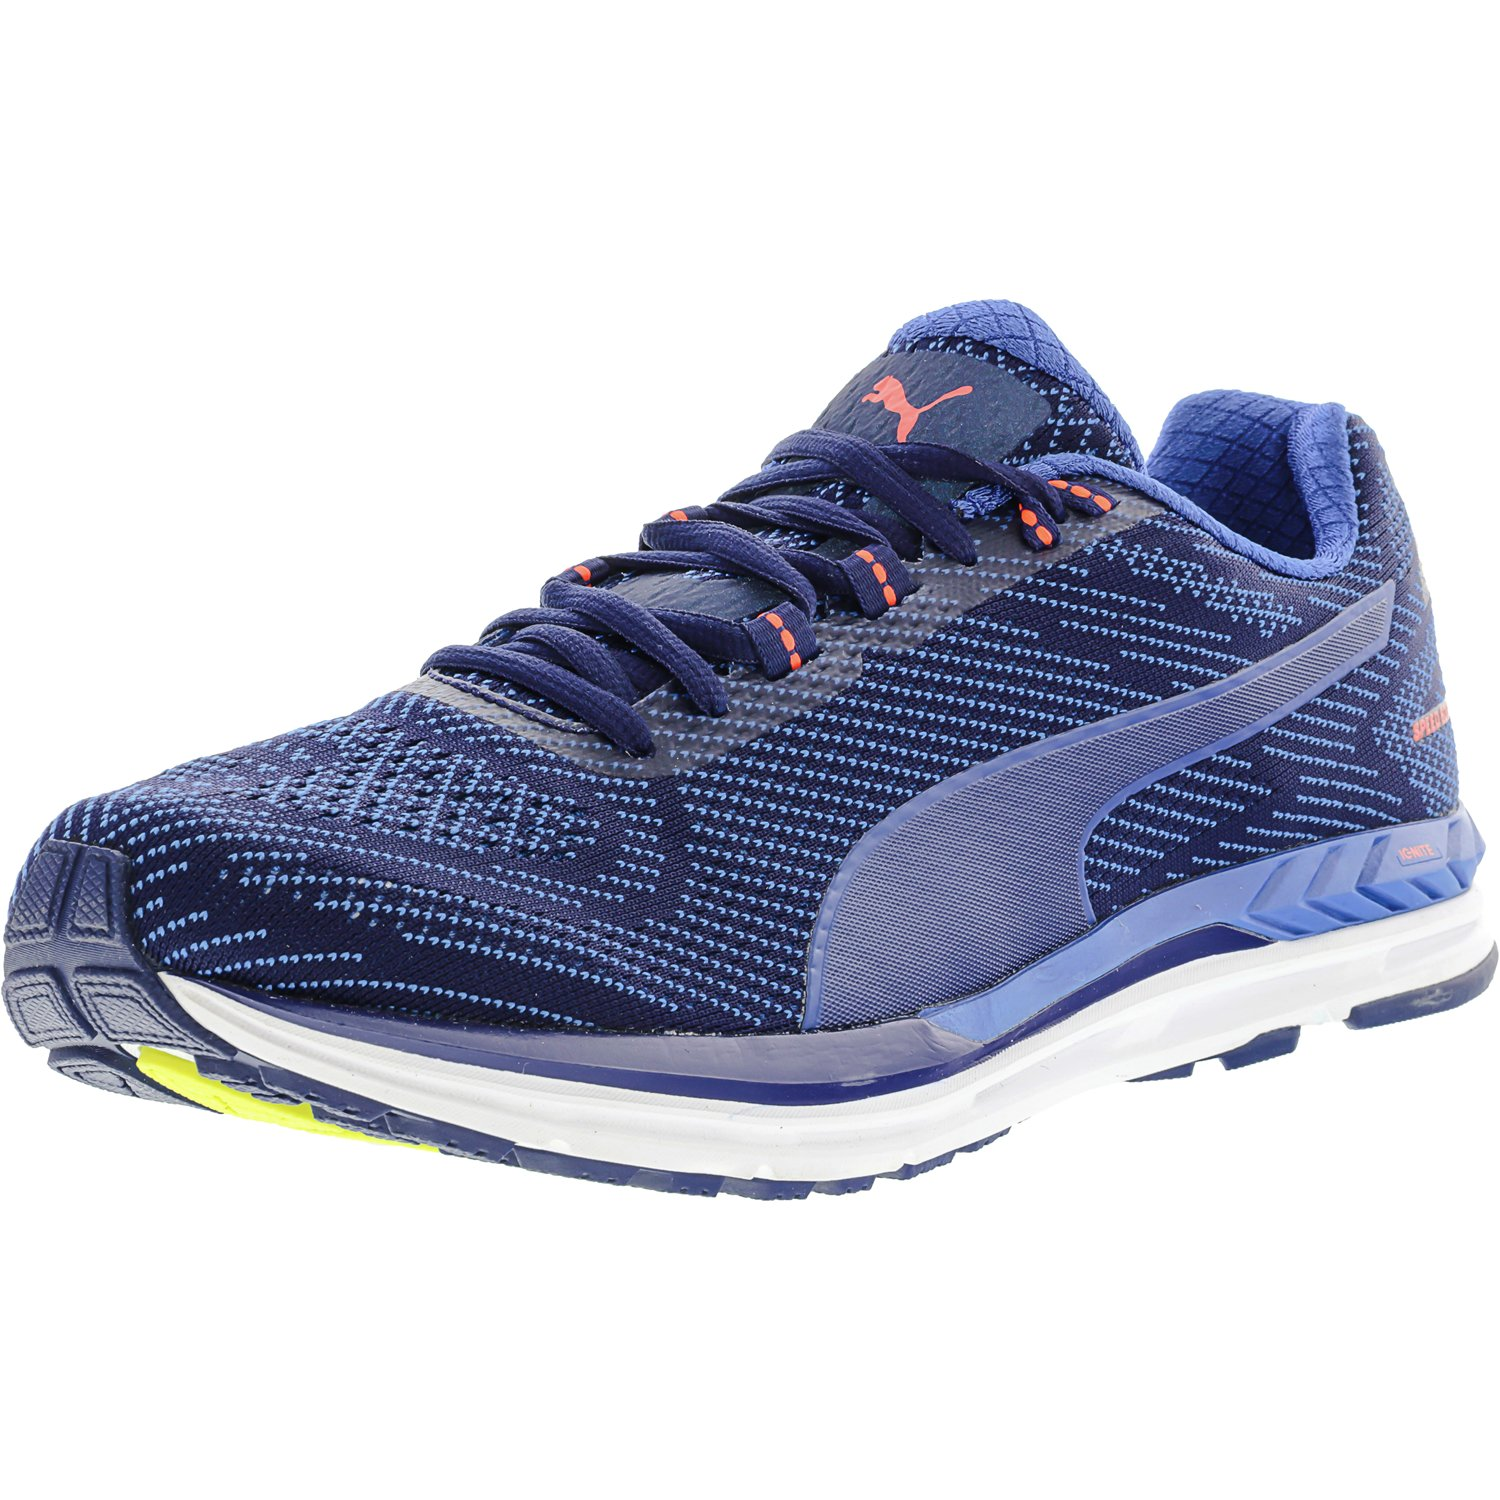 6a7007c37a4 Puma Men s Speed 600 S Ignite Blue Depths   Lapis Coral Ankle-High Running  Shoe - 10M